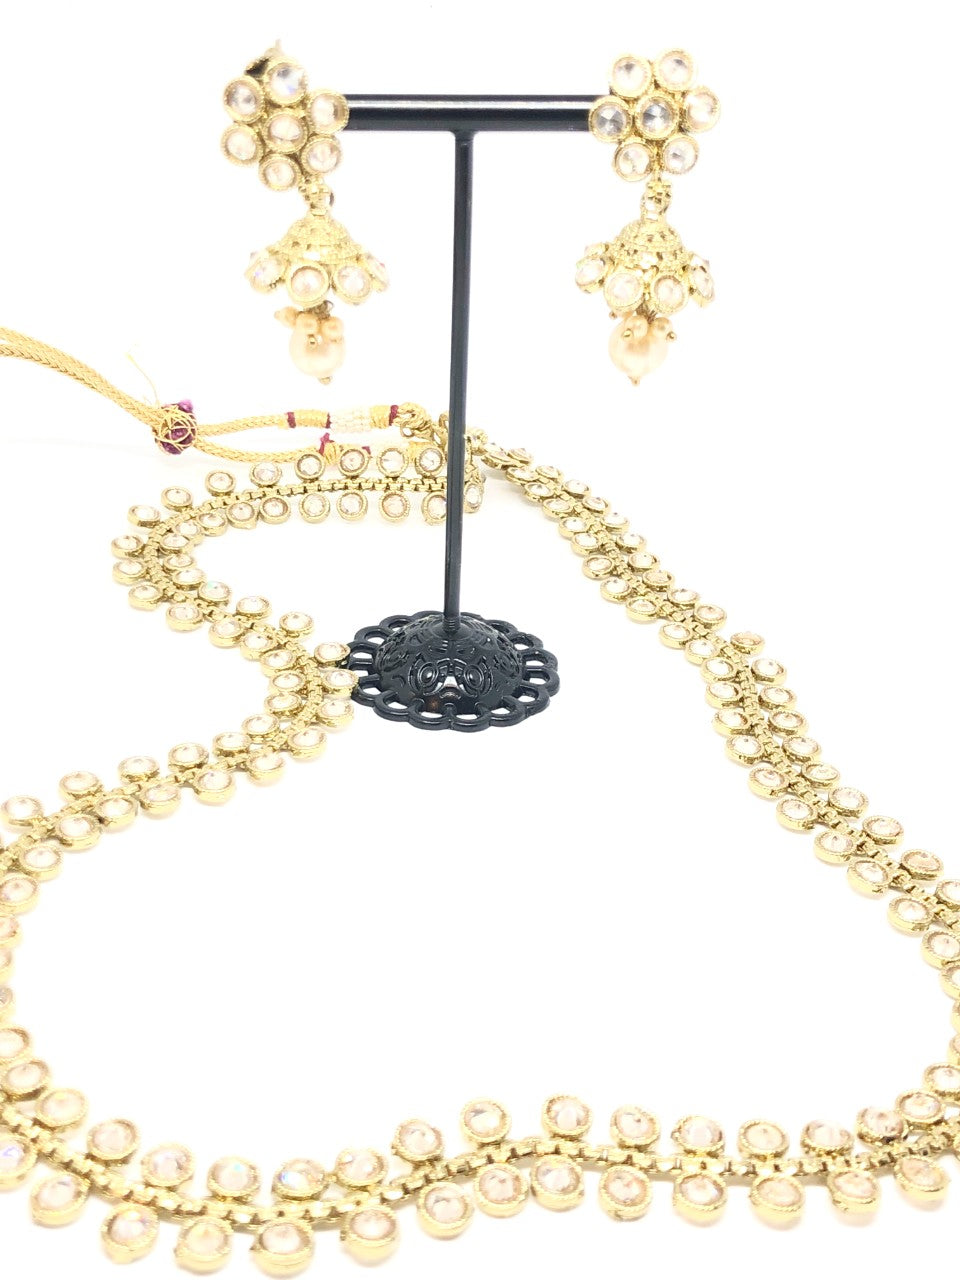 || JHANSI GOLD || Indian Long lightweight Necklace with Earrings